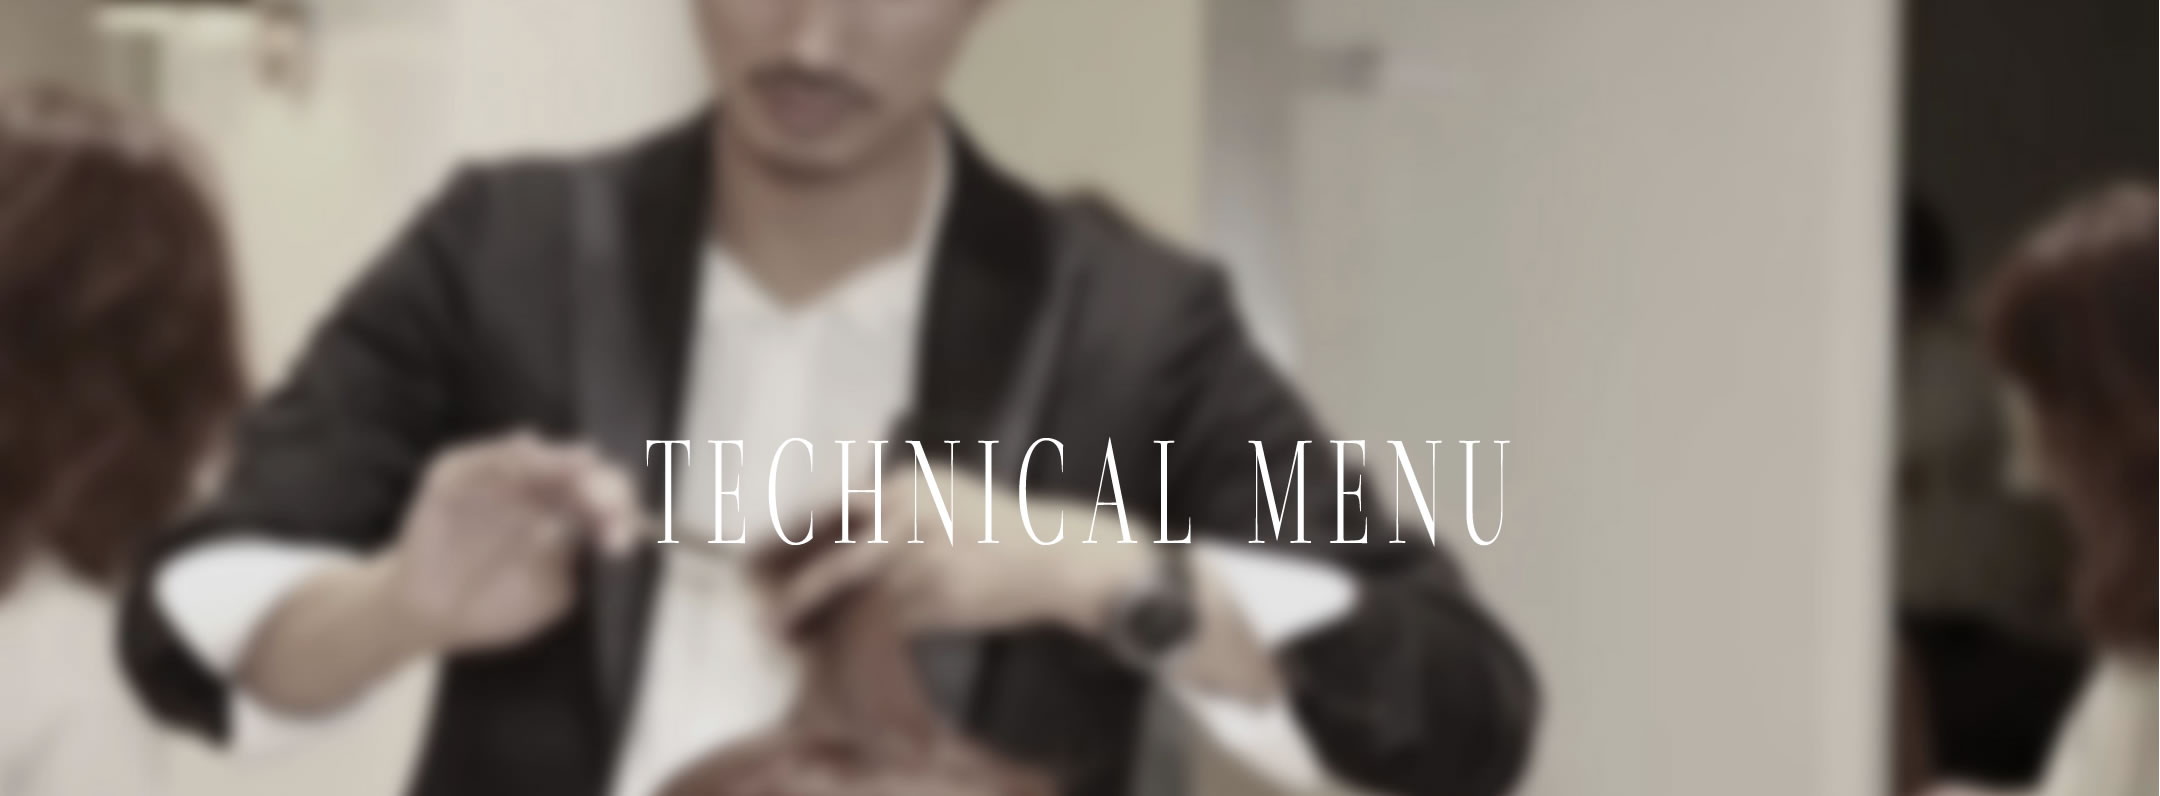 TECHNICAL MENU